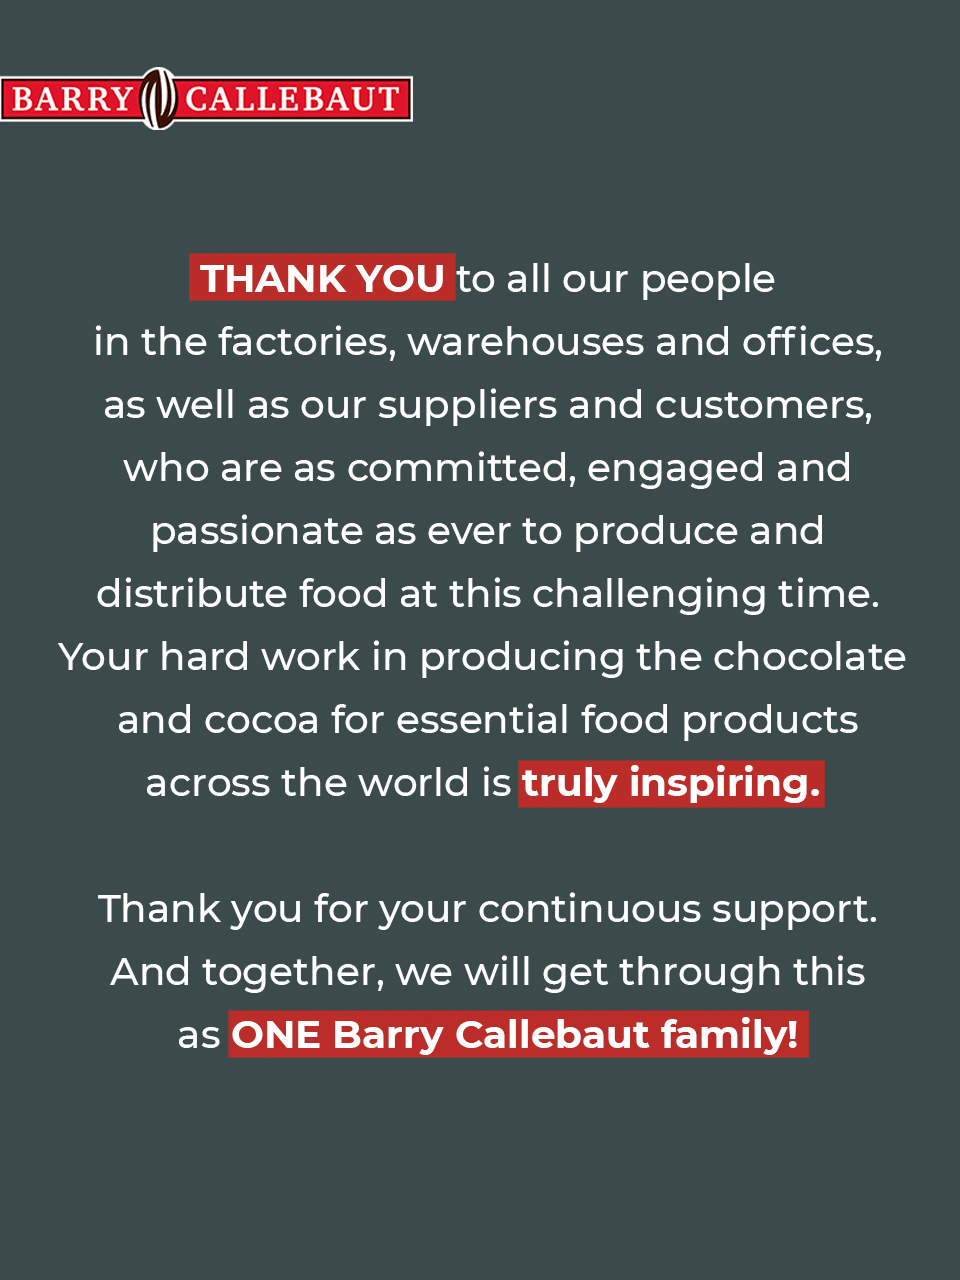 Barry Callebaut Thank You Message COVID-19 Employees, Customer, Suppliers